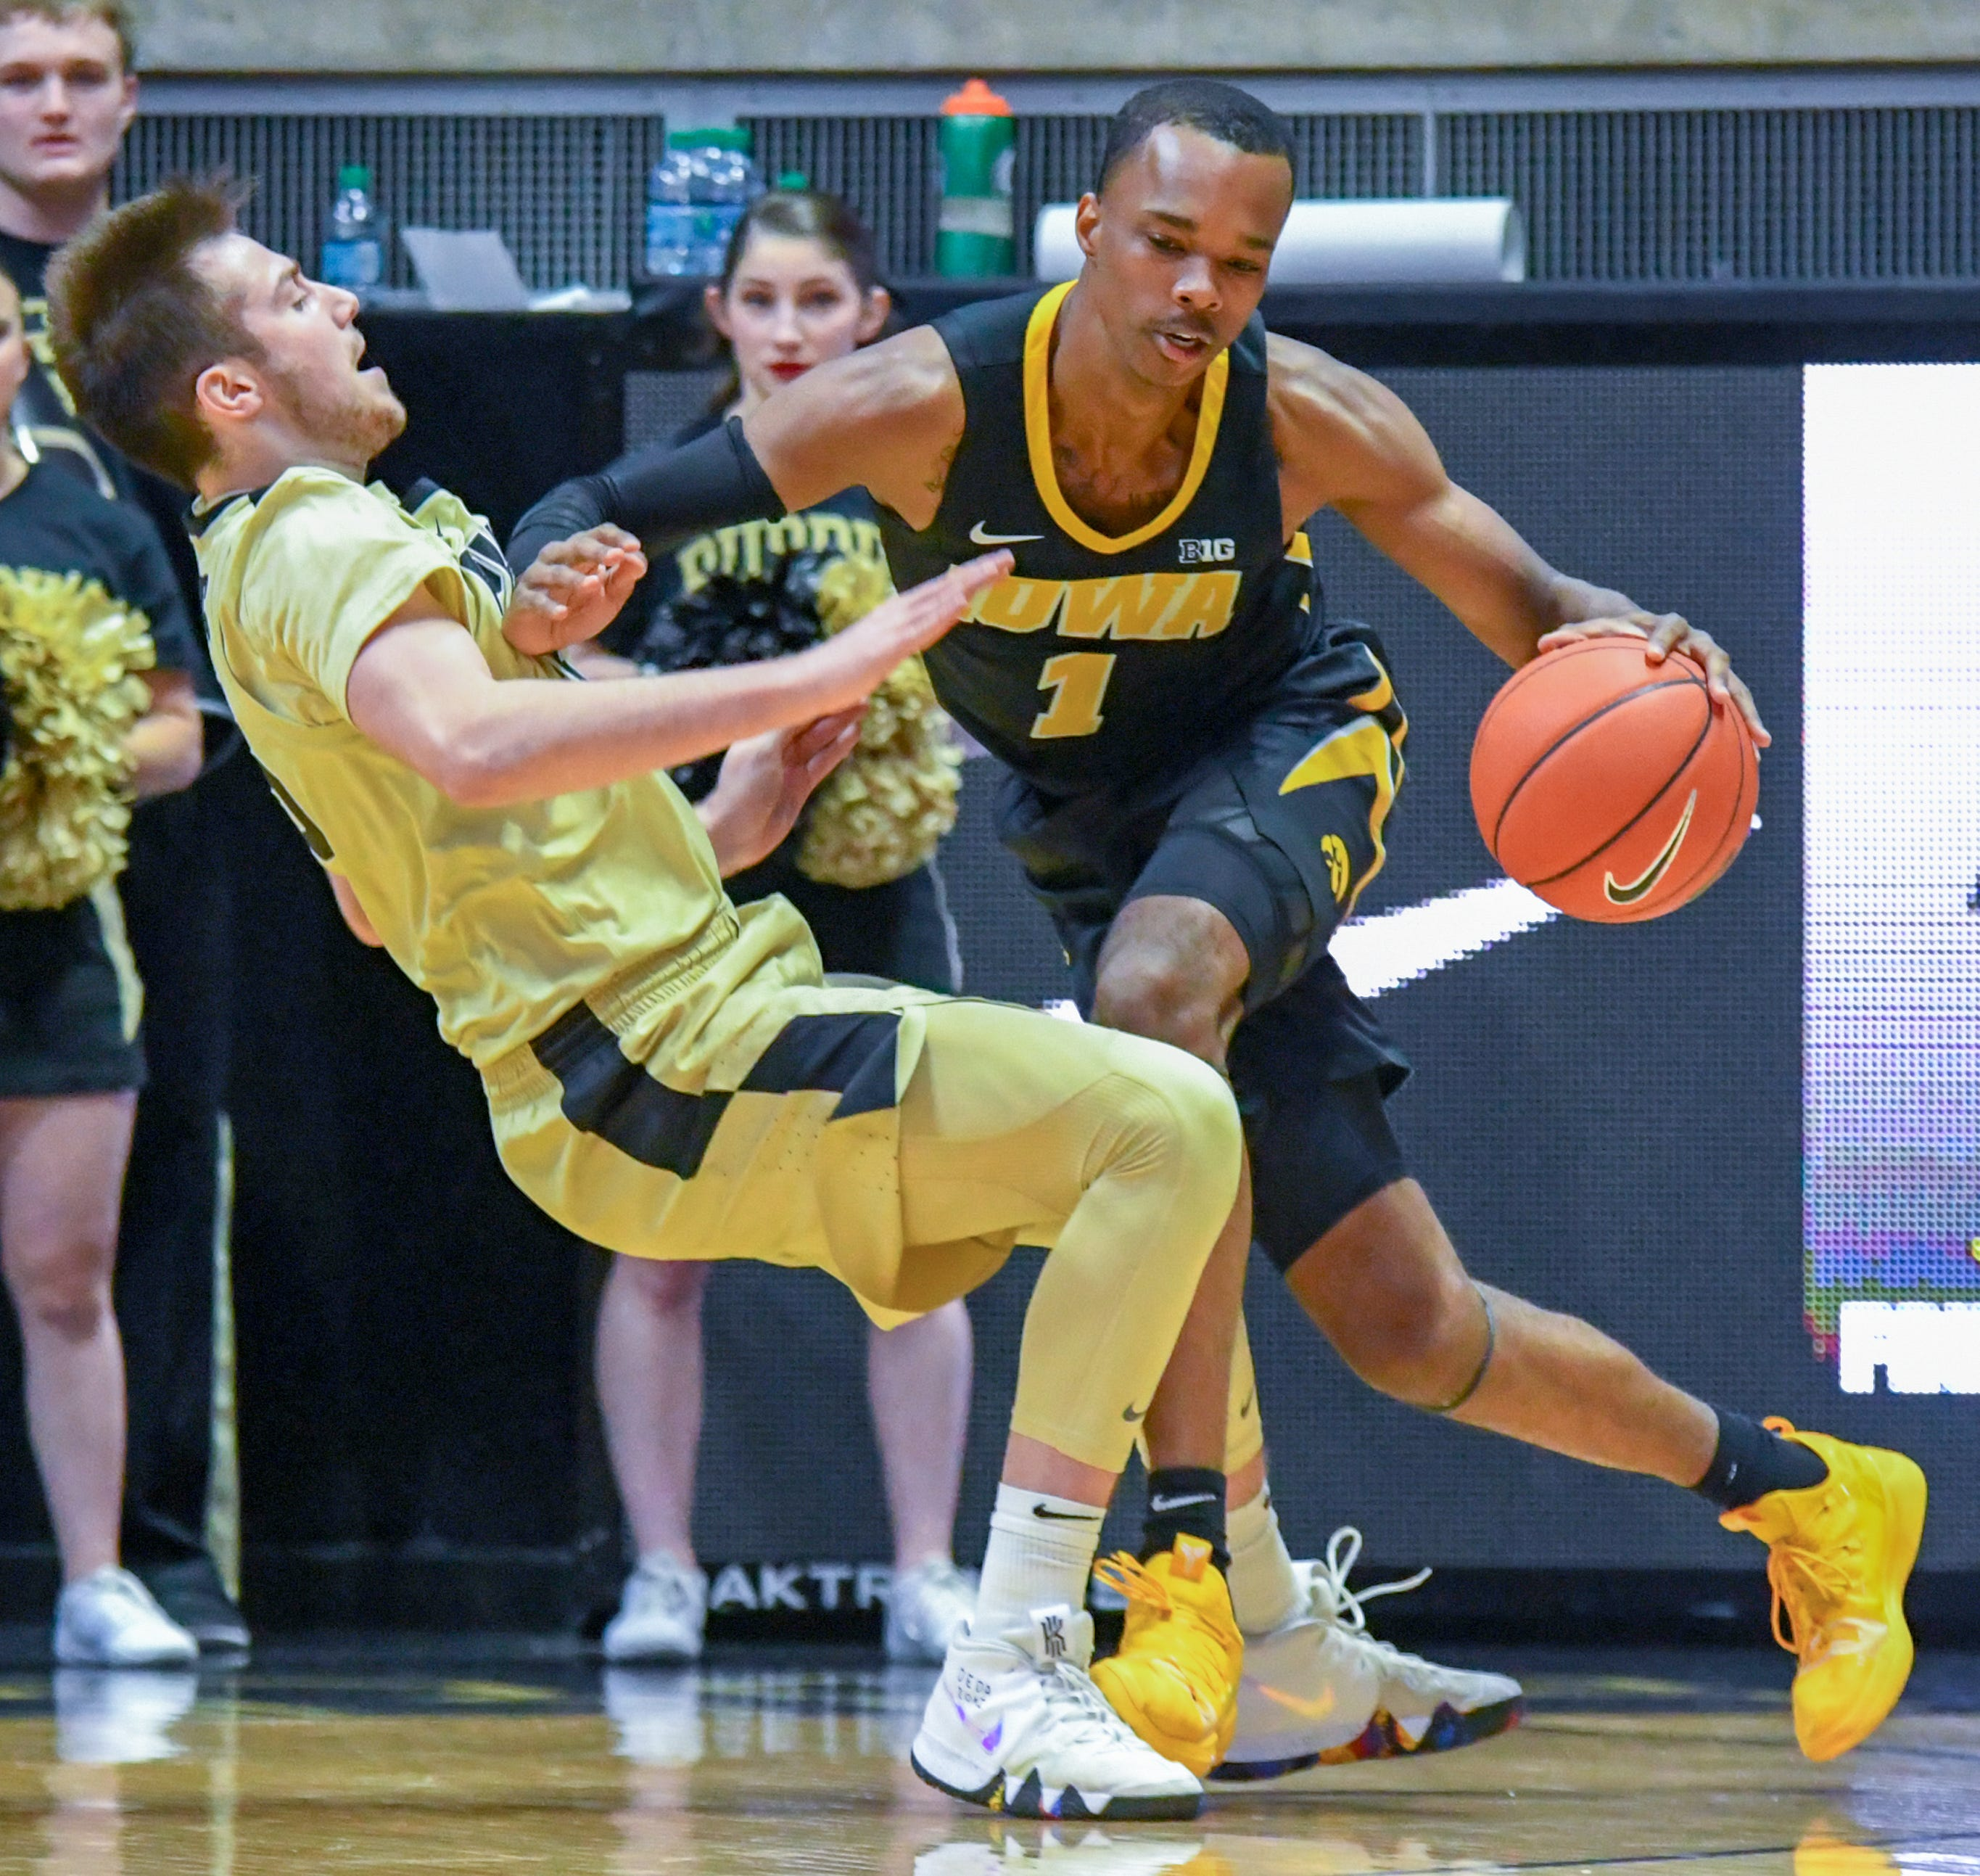 Action from Purdue's win against Iowa in West Lafayette on Thursday January 3, 2019. Purdue defeated the Hawkeyes 86-70. Iowa's Maishe Dailey